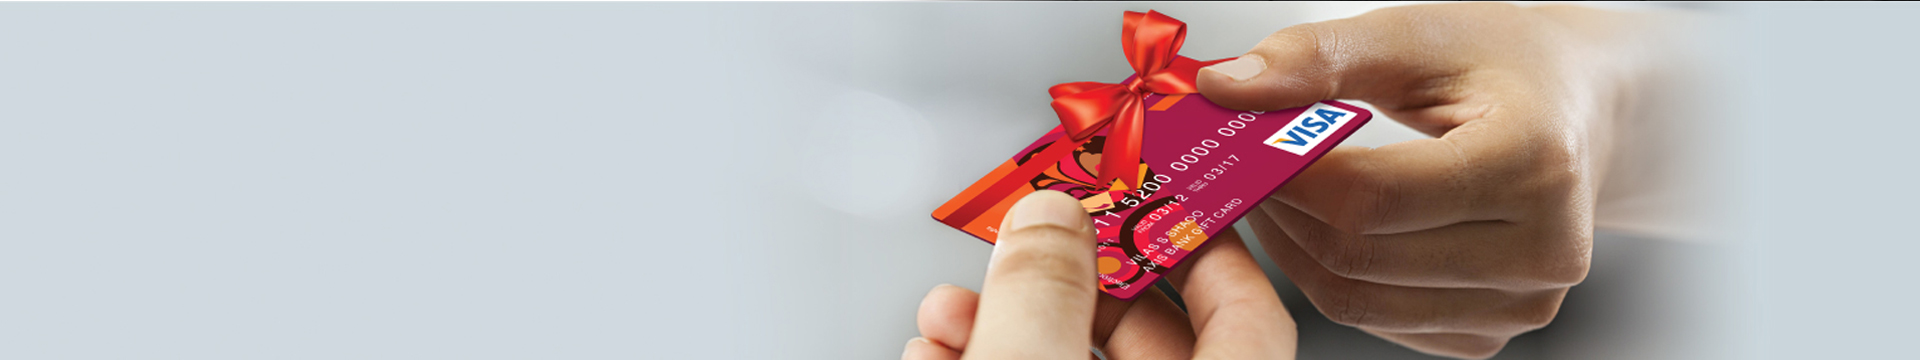 Prepaid Cards for Meal, Gifting and Rewarding - Apply Online